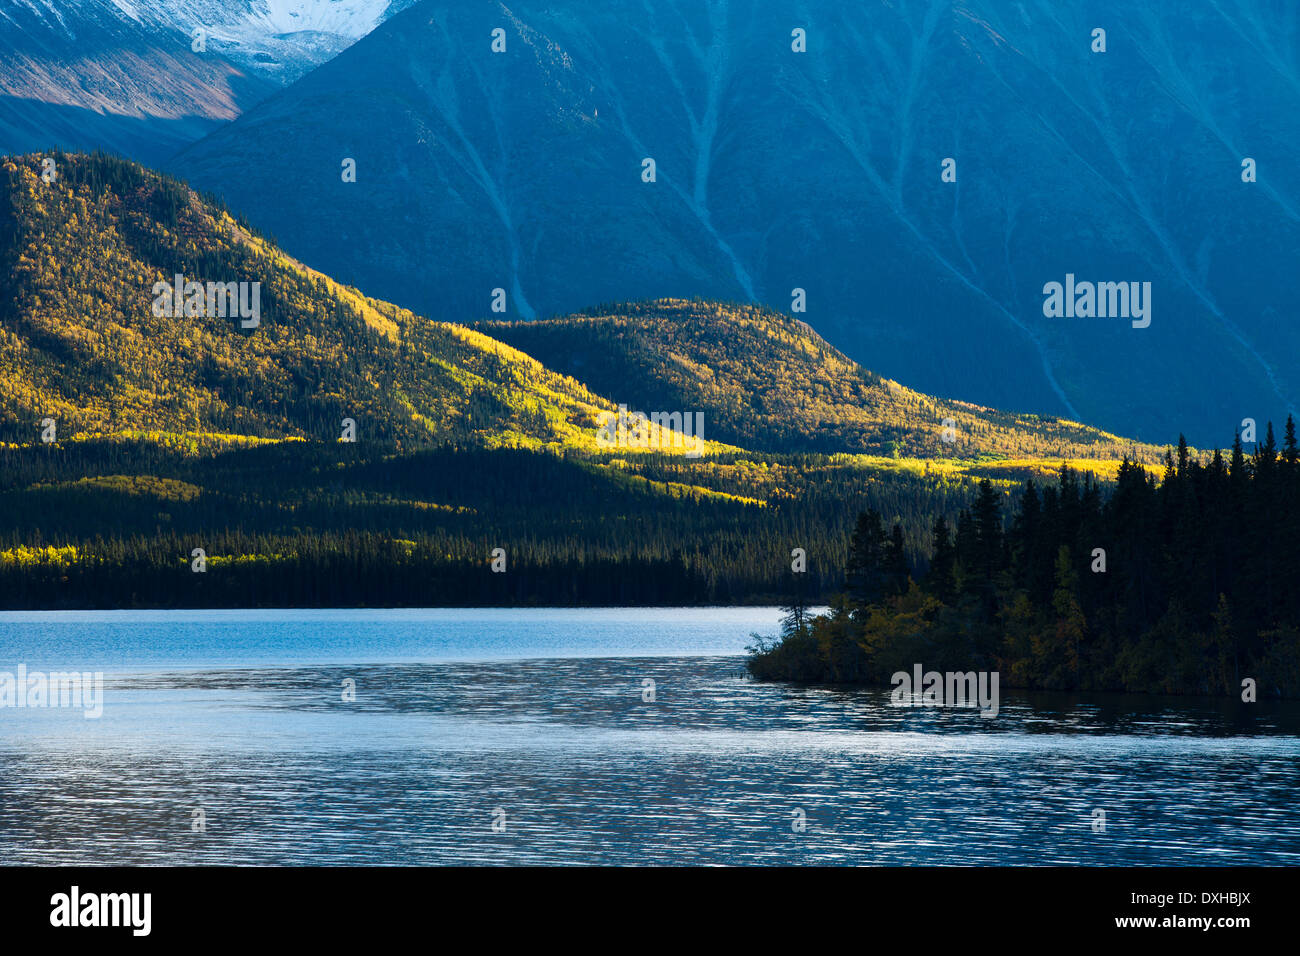 Tushti Lake & Young Peak, British Columbia, Canada Photo Stock